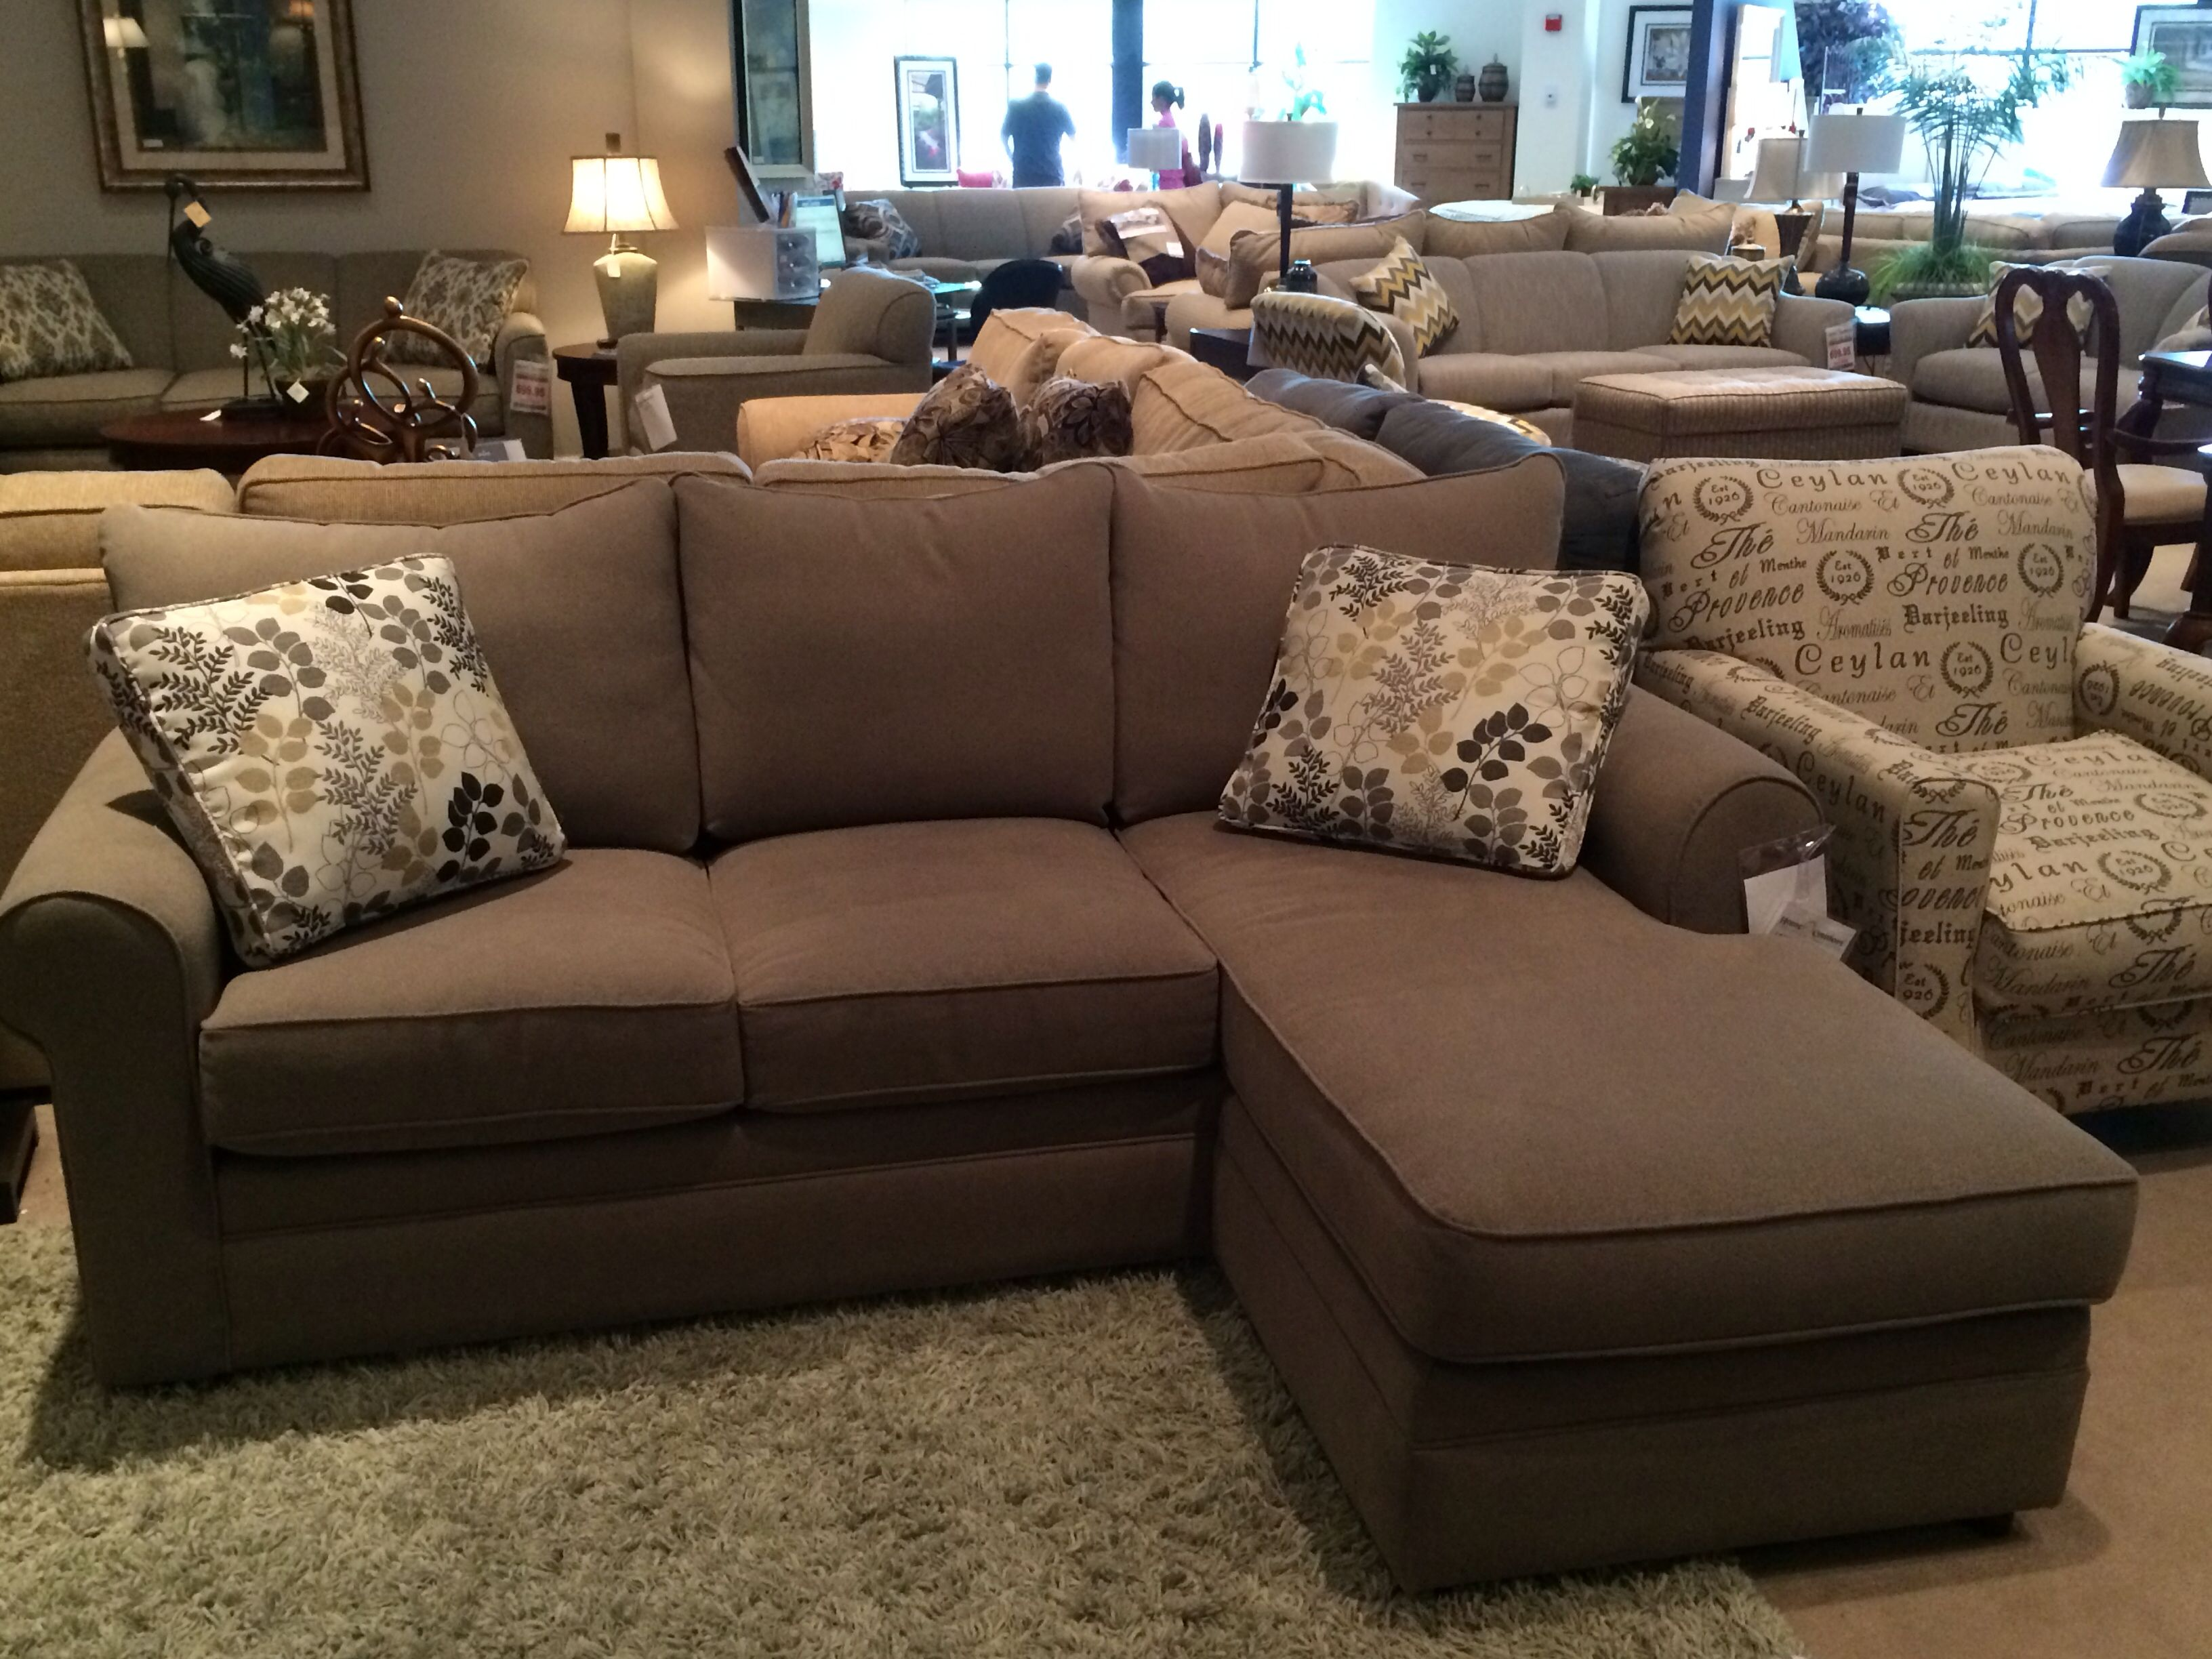 Simone sofa 2 seater with left hand chaise from nood interior simone sofa 2 seater with left hand chaise from nood interior style pinterest lounge ideas living room sofa and living rooms parisarafo Images